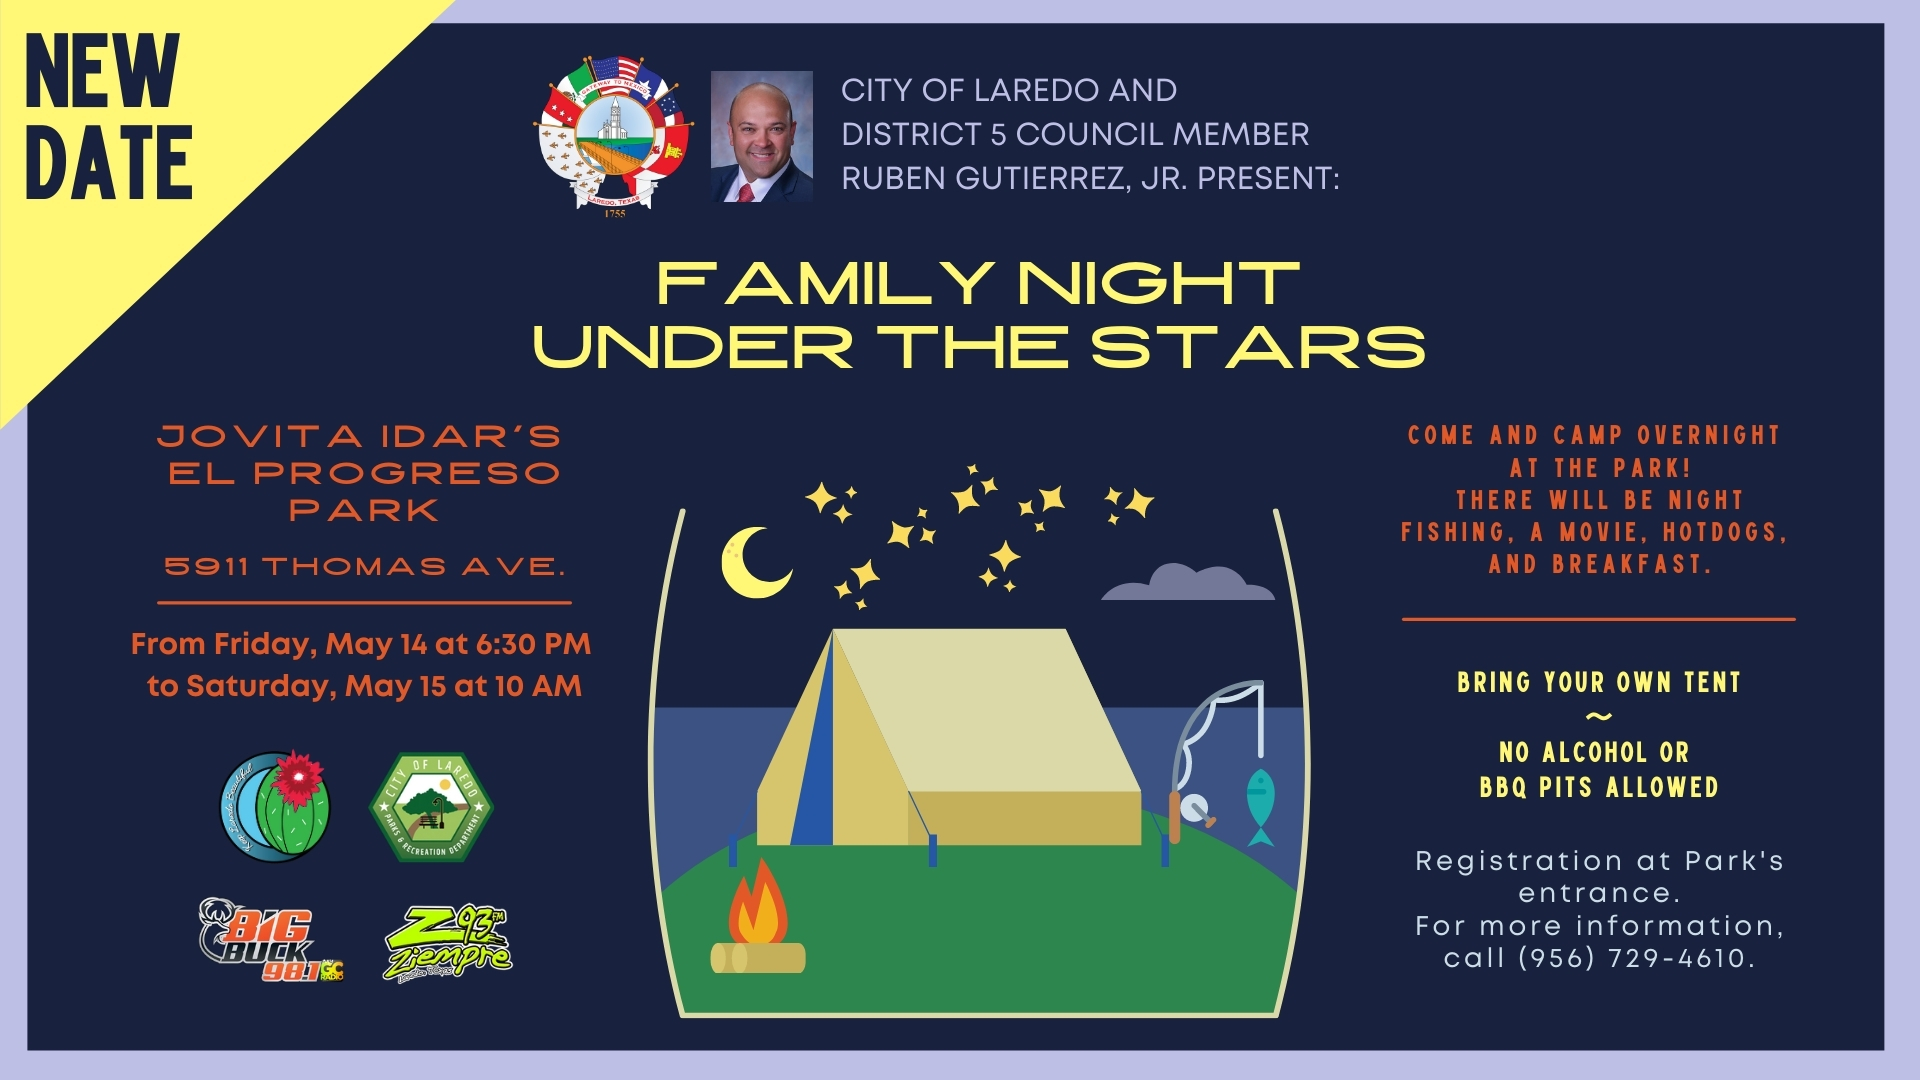 Family Night Under the Stars